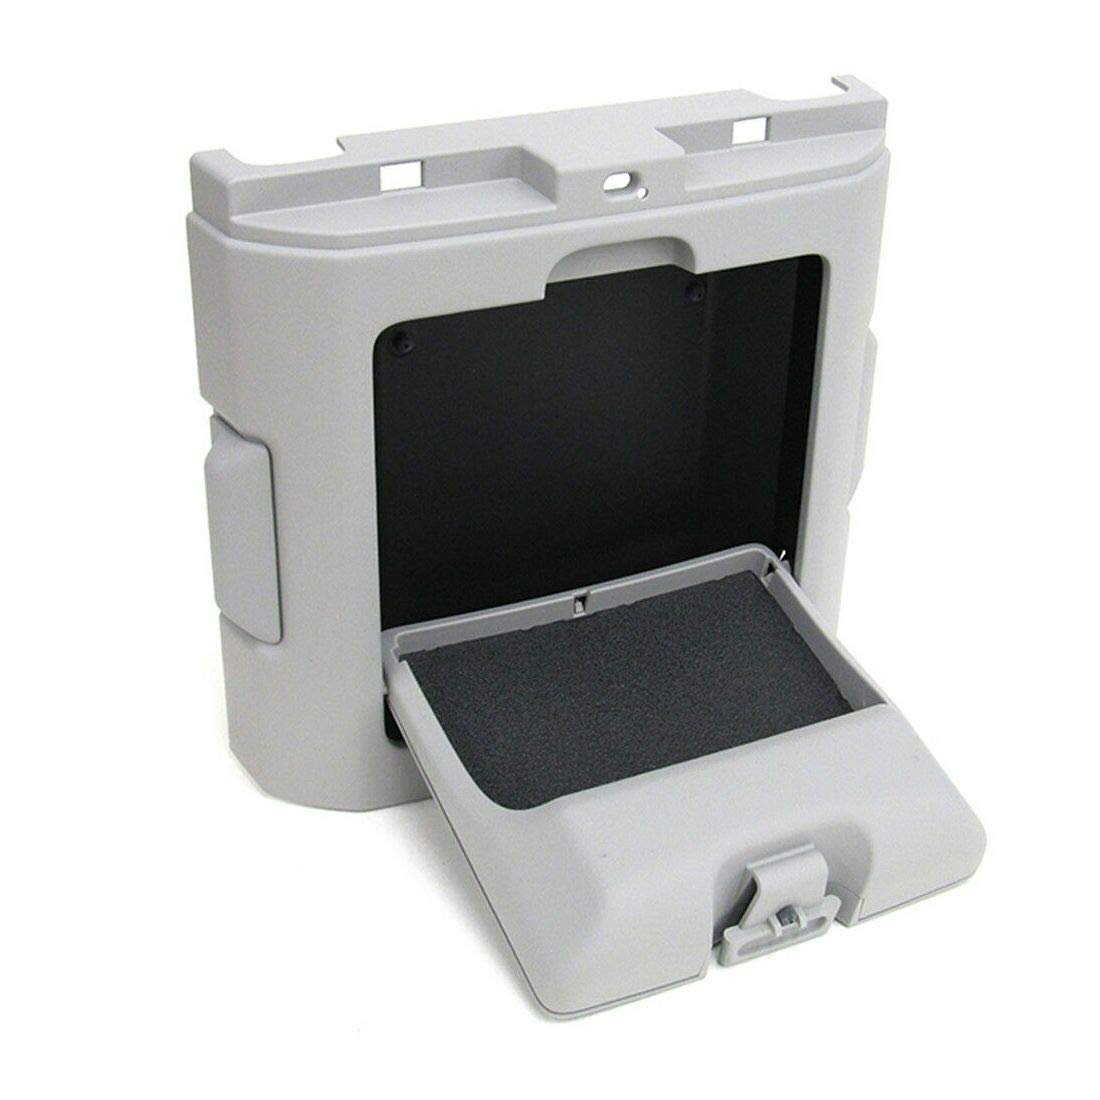 Genuine Rear Overhead Roof Console Grey Flint 04-08 F0rd F-150 4L3-Z185-19A-70AAM Quick Delivery by $/Reliable